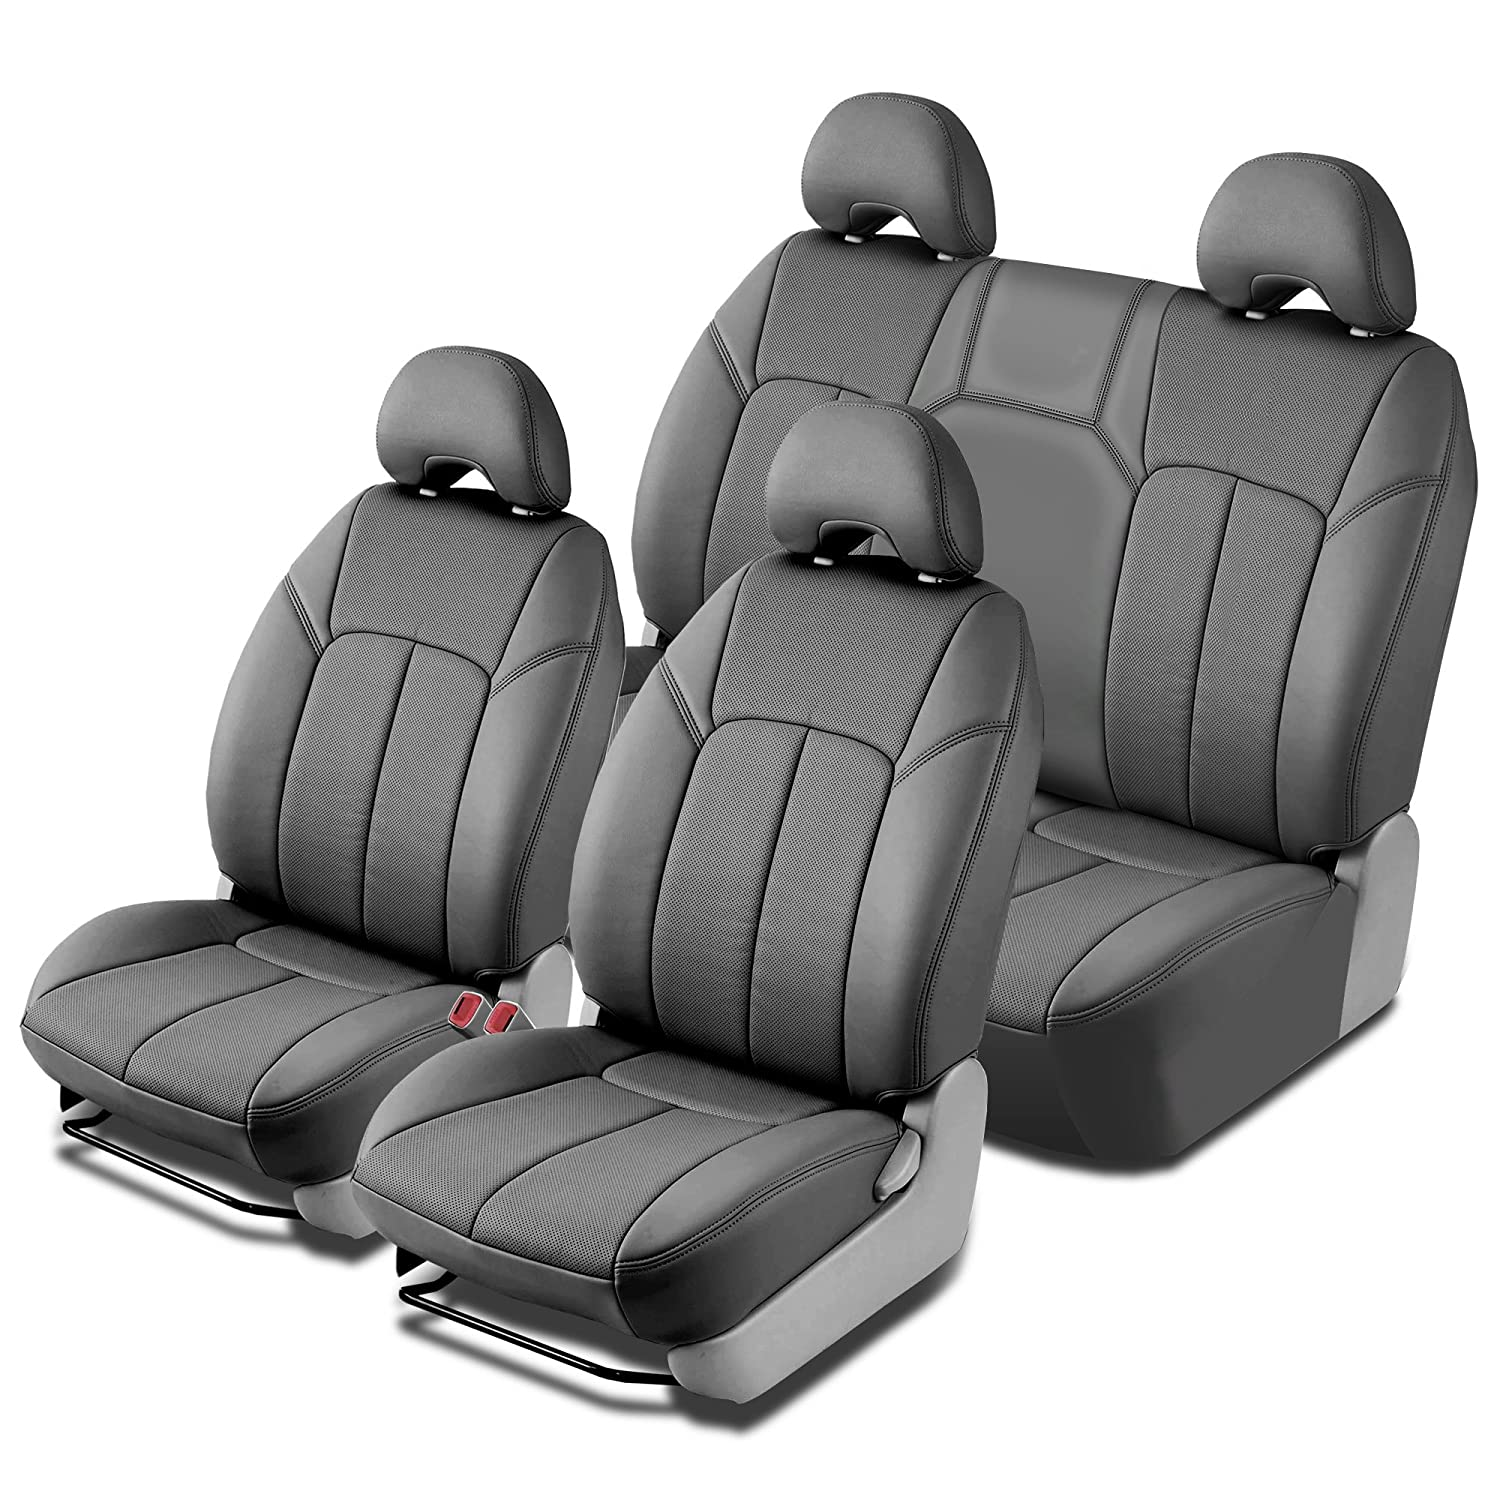 Clazzio 245522gry Grey Leather Front and Rear Row Seat Cover for Toyota Rav4 Base